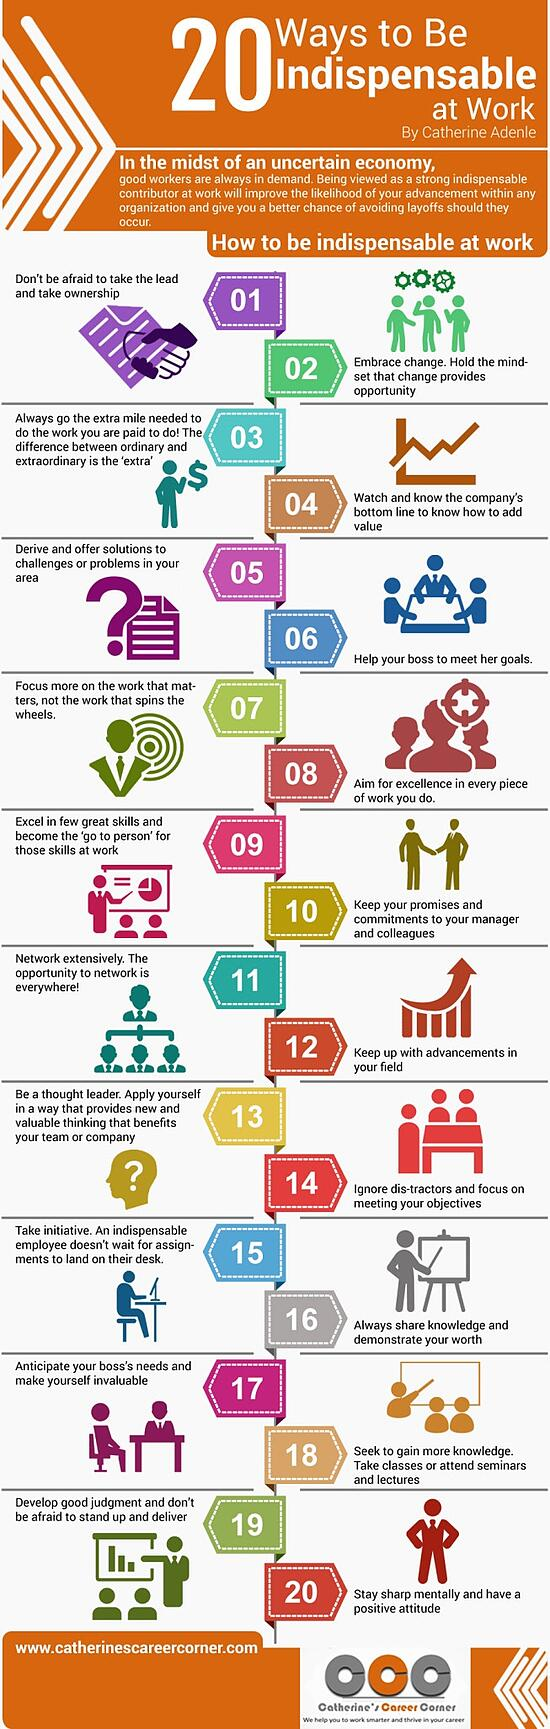 20-Ways-to-Be-Indispensable-at-Work-1-653x2053-1.jpg